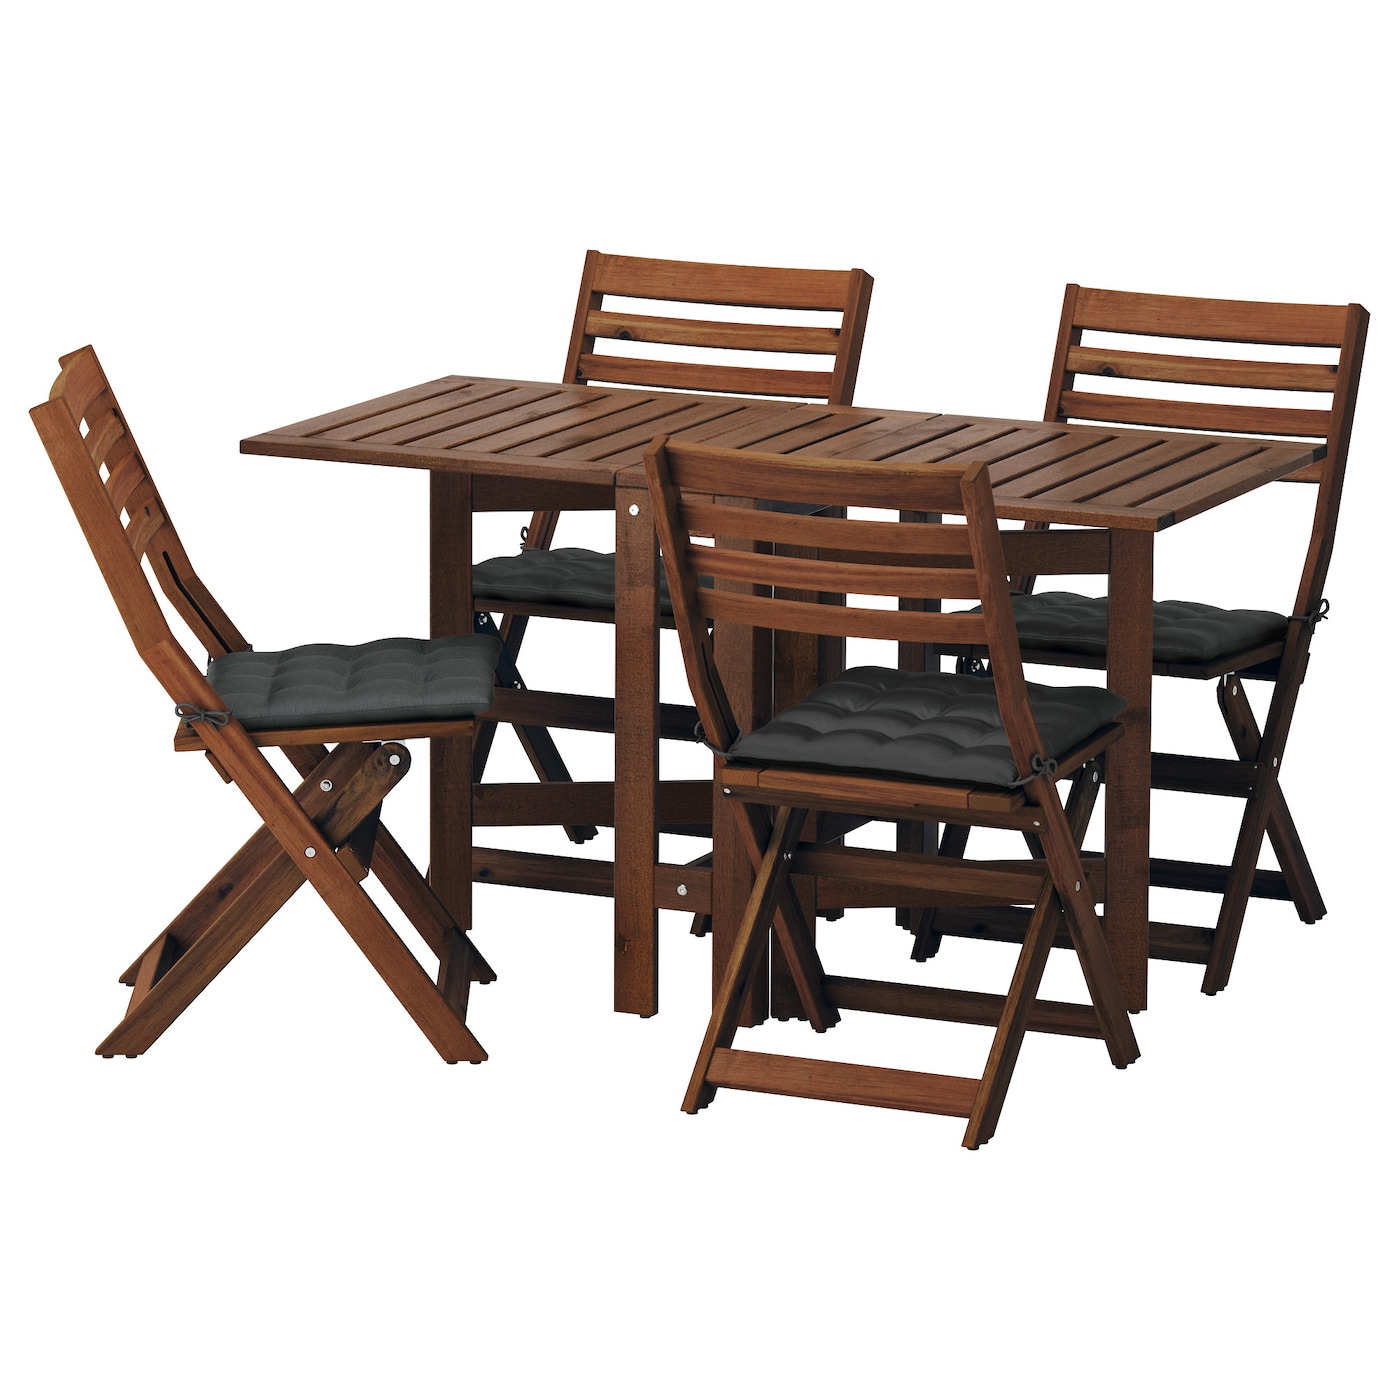 Garden tables outdoor tables ikea for Small patio table and 4 chairs